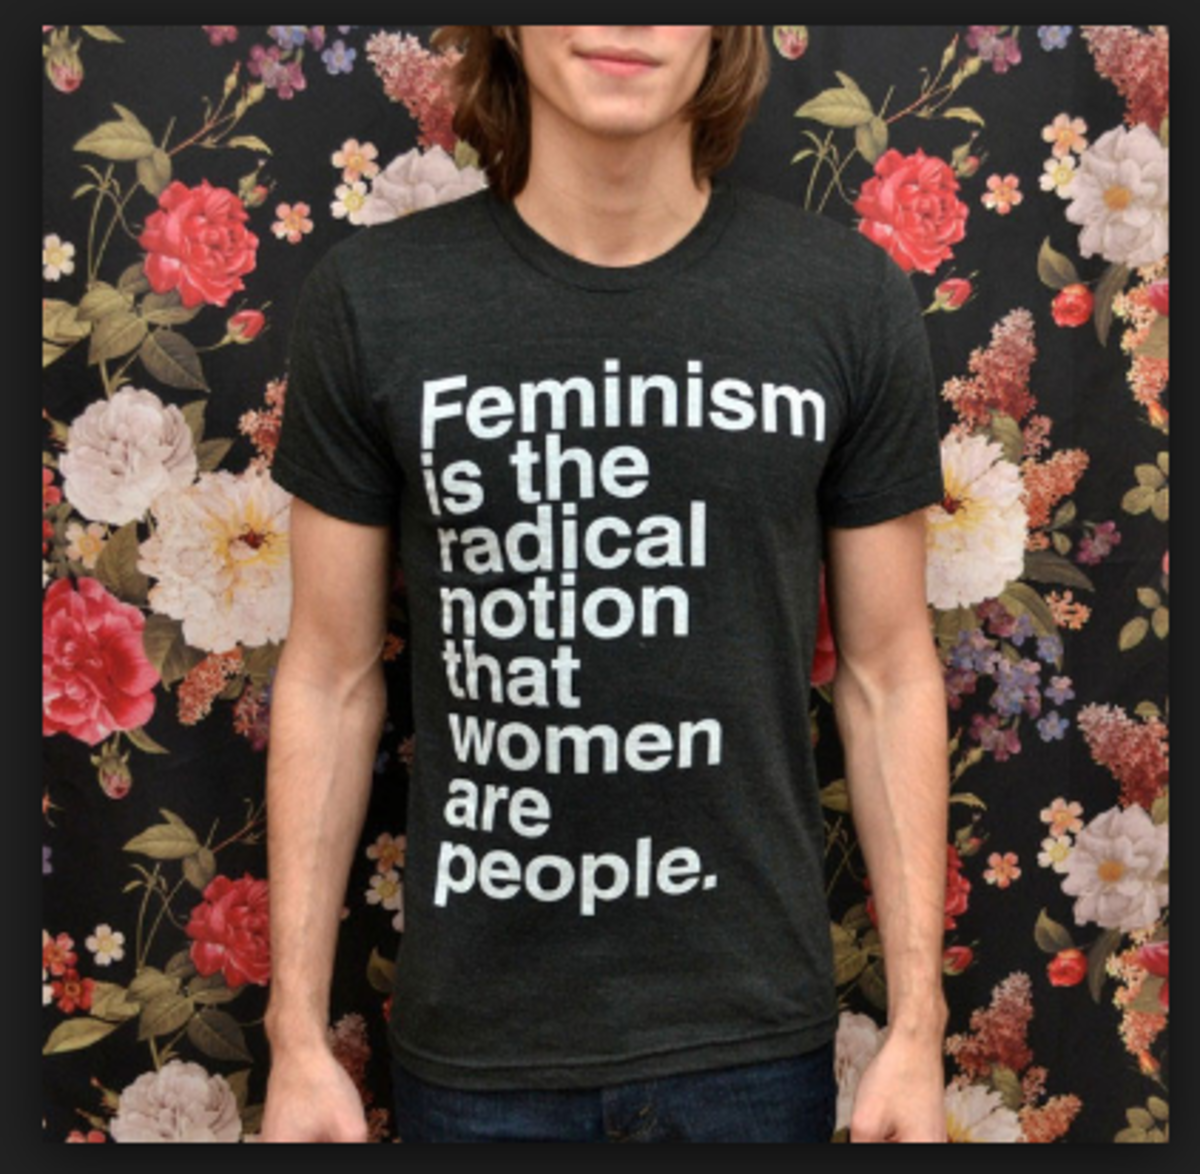 Feminism is the radical notion that all women are people.